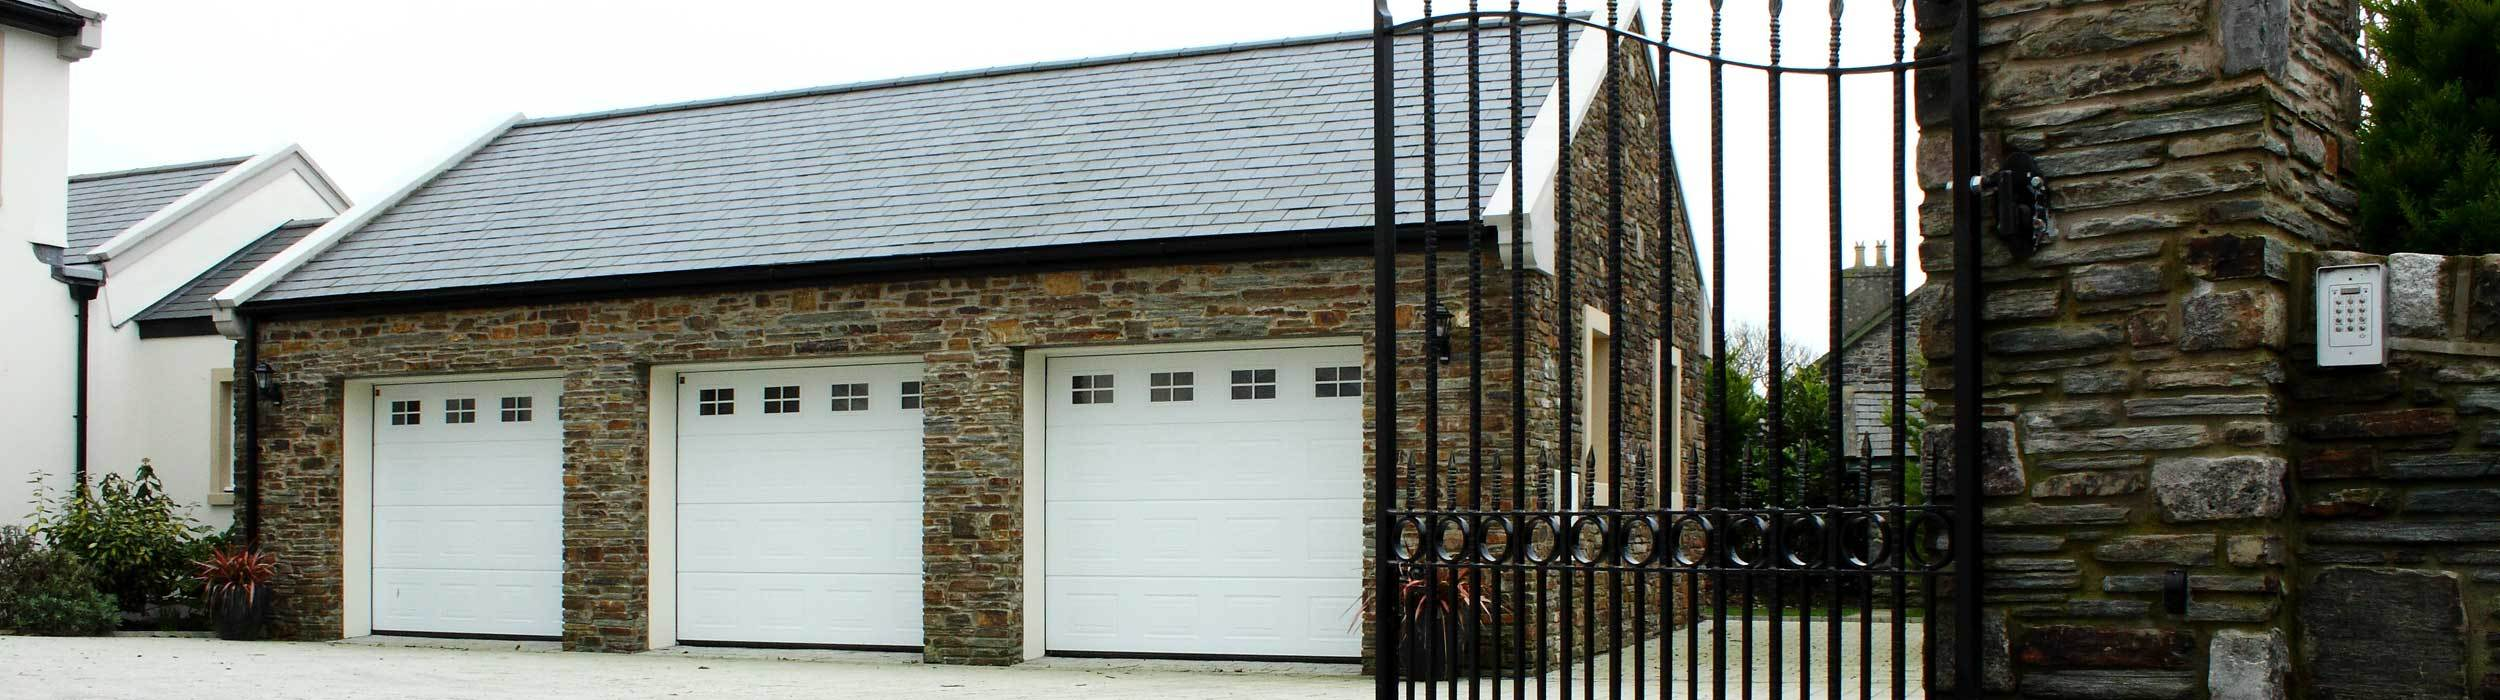 Decorating garage man door images : The Garage Door & Gate Automation Company | garage doors | Isle of Man